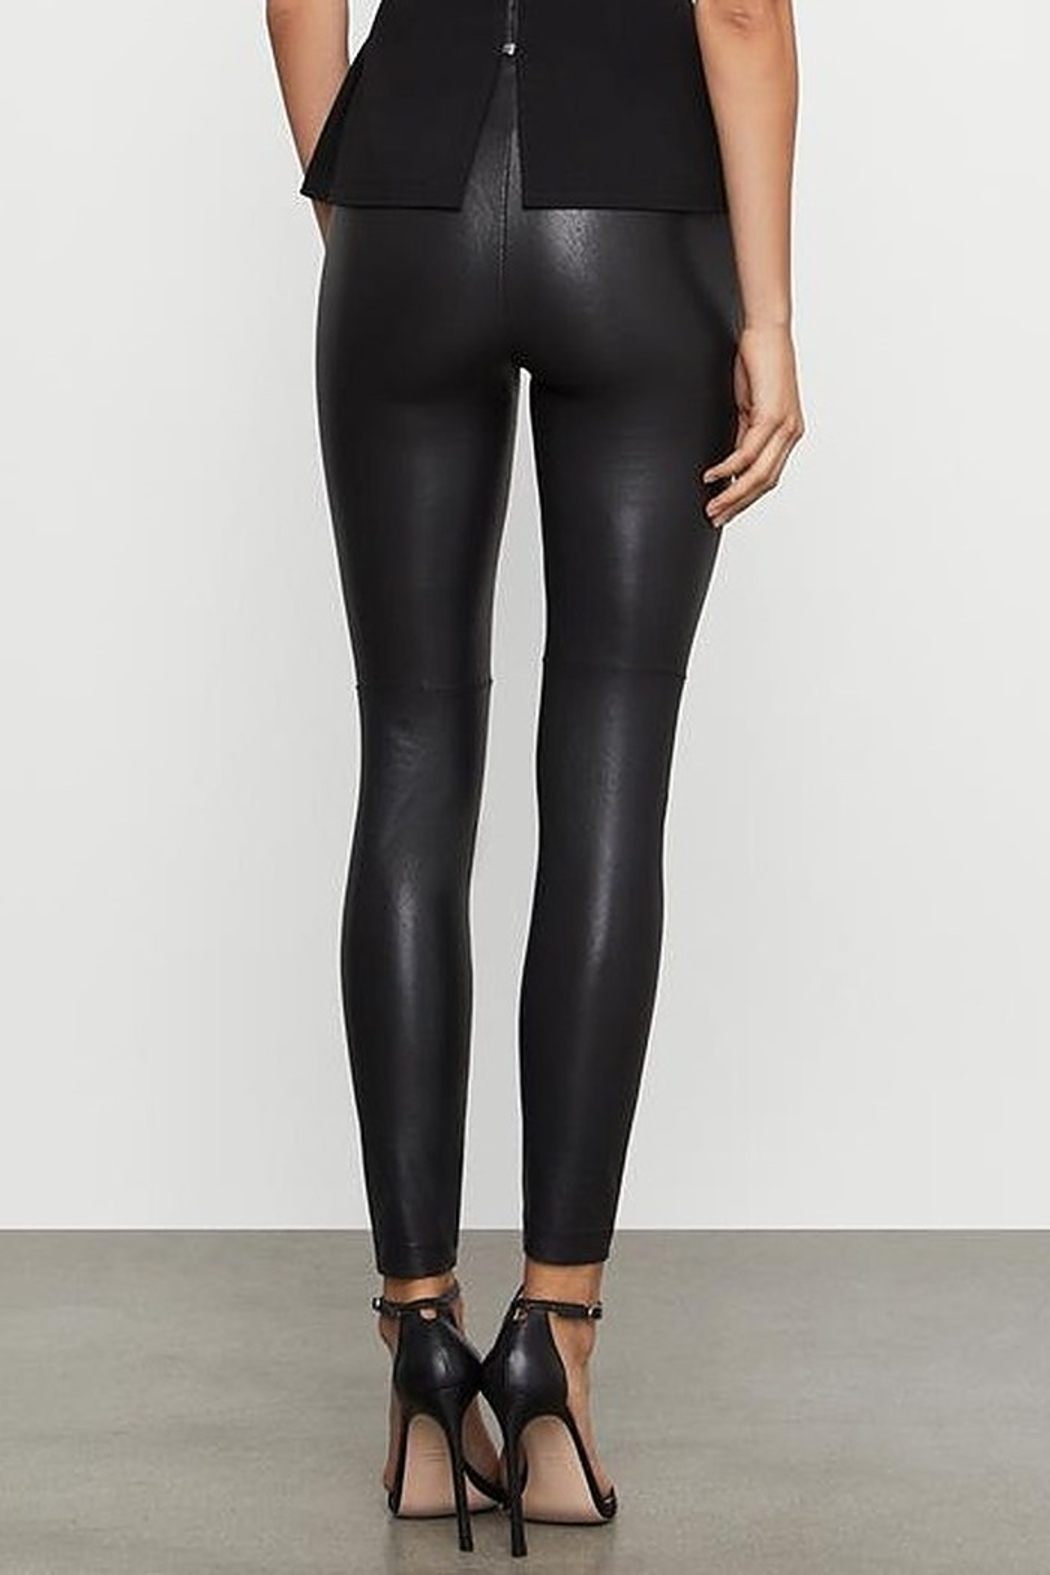 BCBG Max Azria Two Tone Coated Leggings - Front Full Image